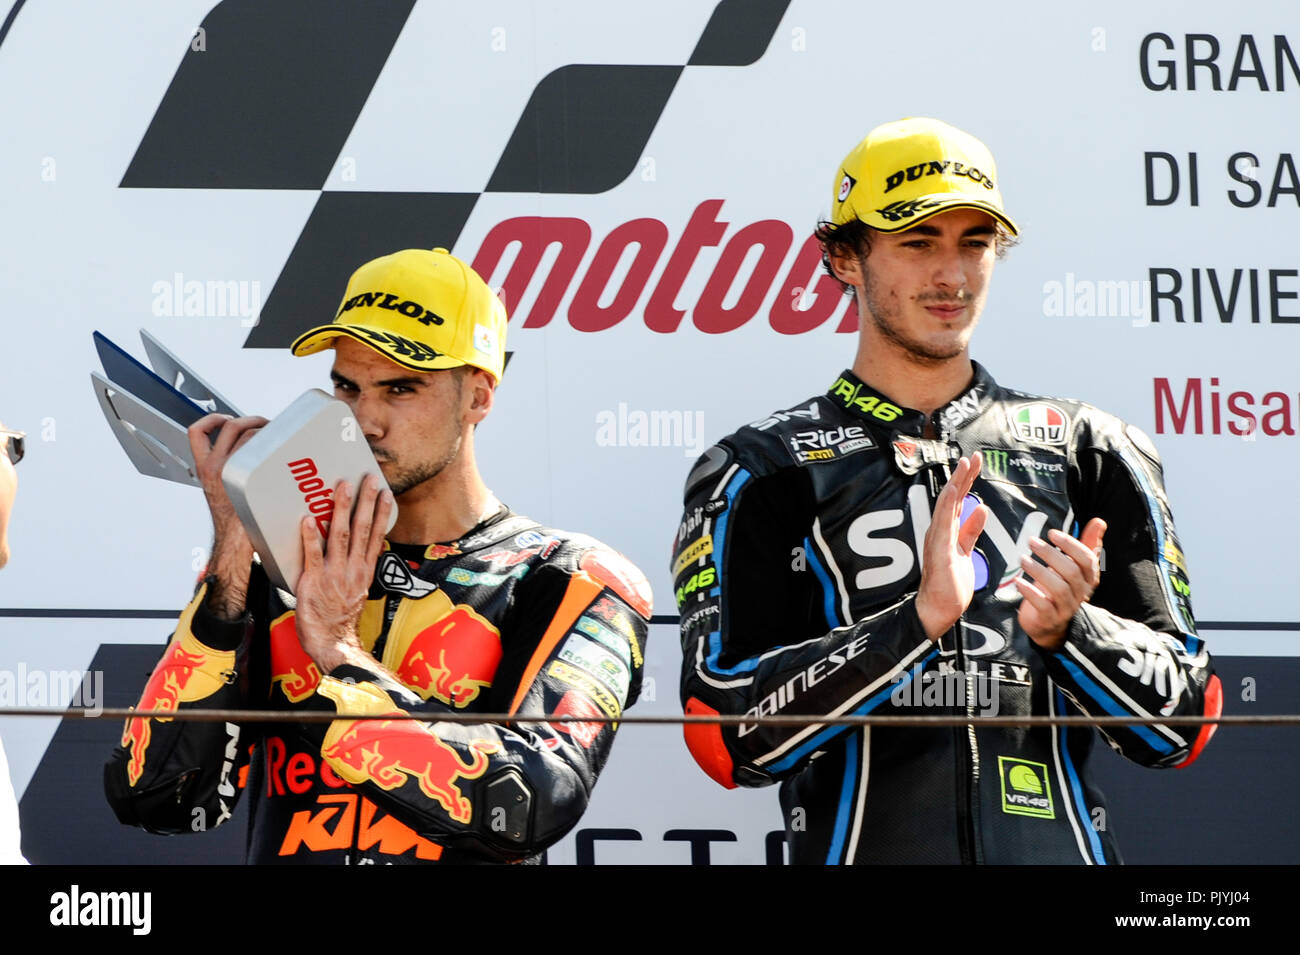 Misano, Misano World Circuit, Italy. 9th Sep, 2018. Italian Motorcycle Grand Prix, race day; Moto 2 rider Miguel Olivera 2nd place on podium, and Francesco Bagnaia 1st place on podium Credit: Action Plus Sports/Alamy Live News - Stock Image